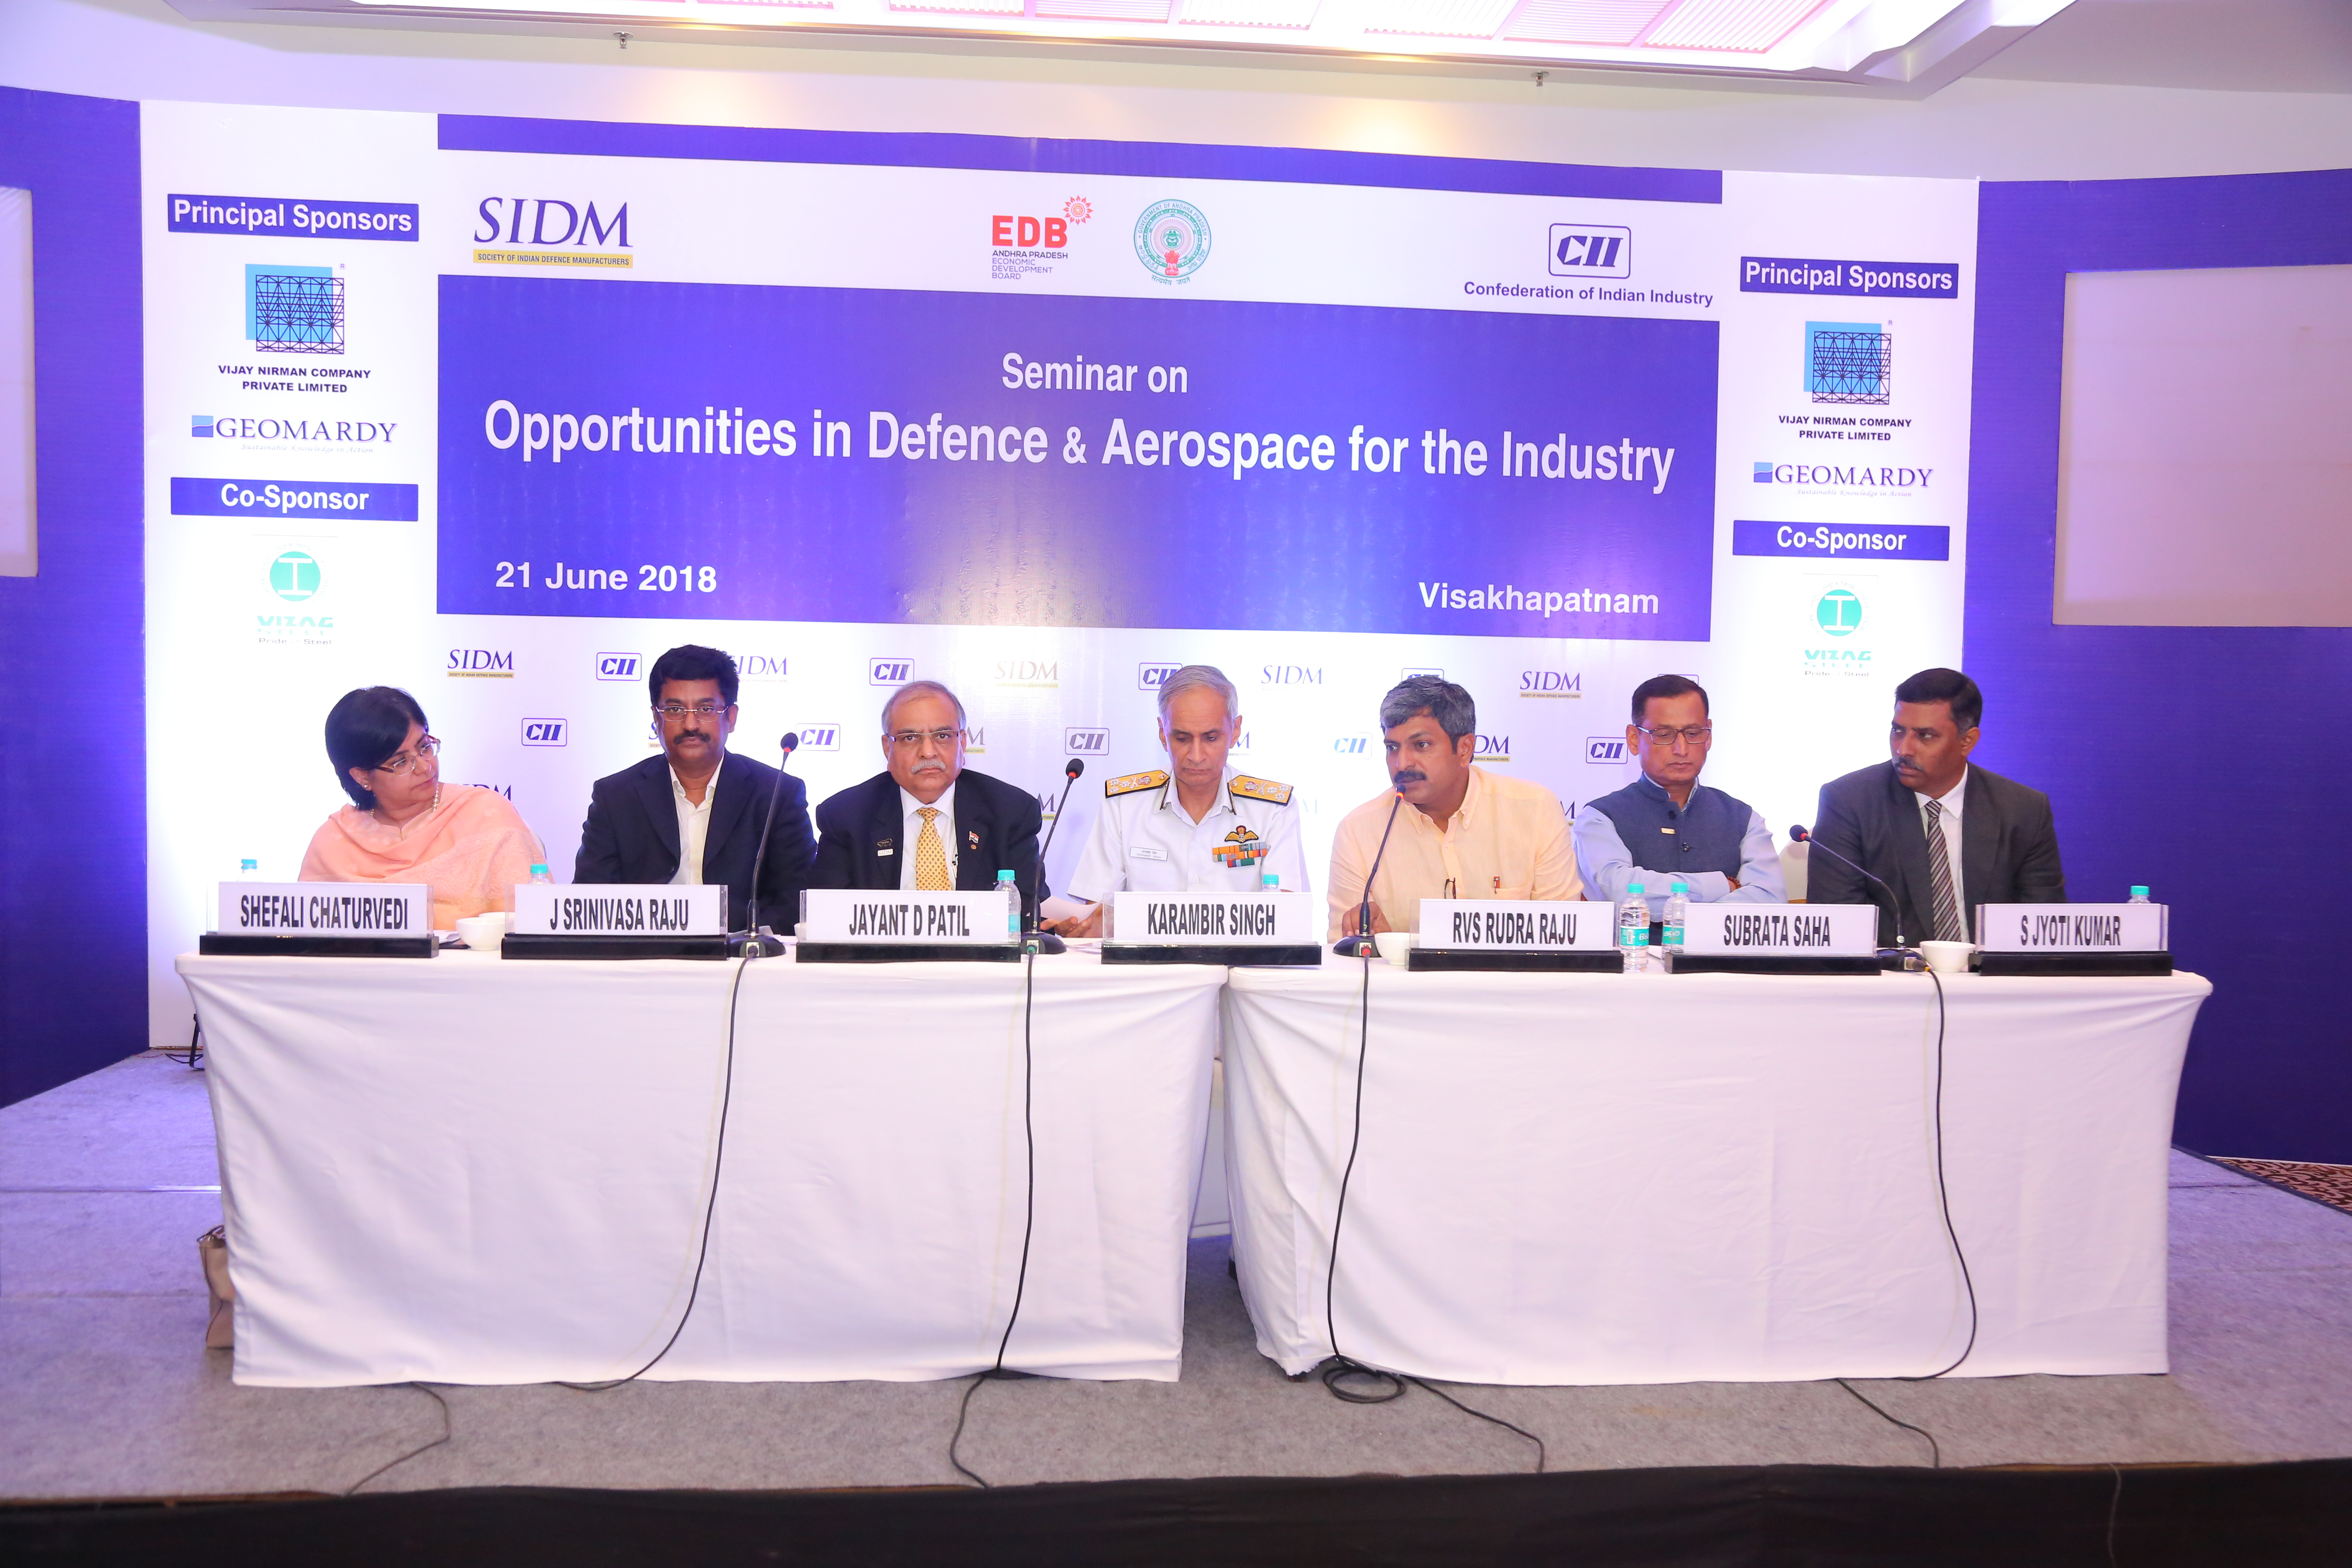 SIDM Seminar on 'Opportunities in Defence & Aerospace for Industry', Visakhapatnam, 21 June 2018